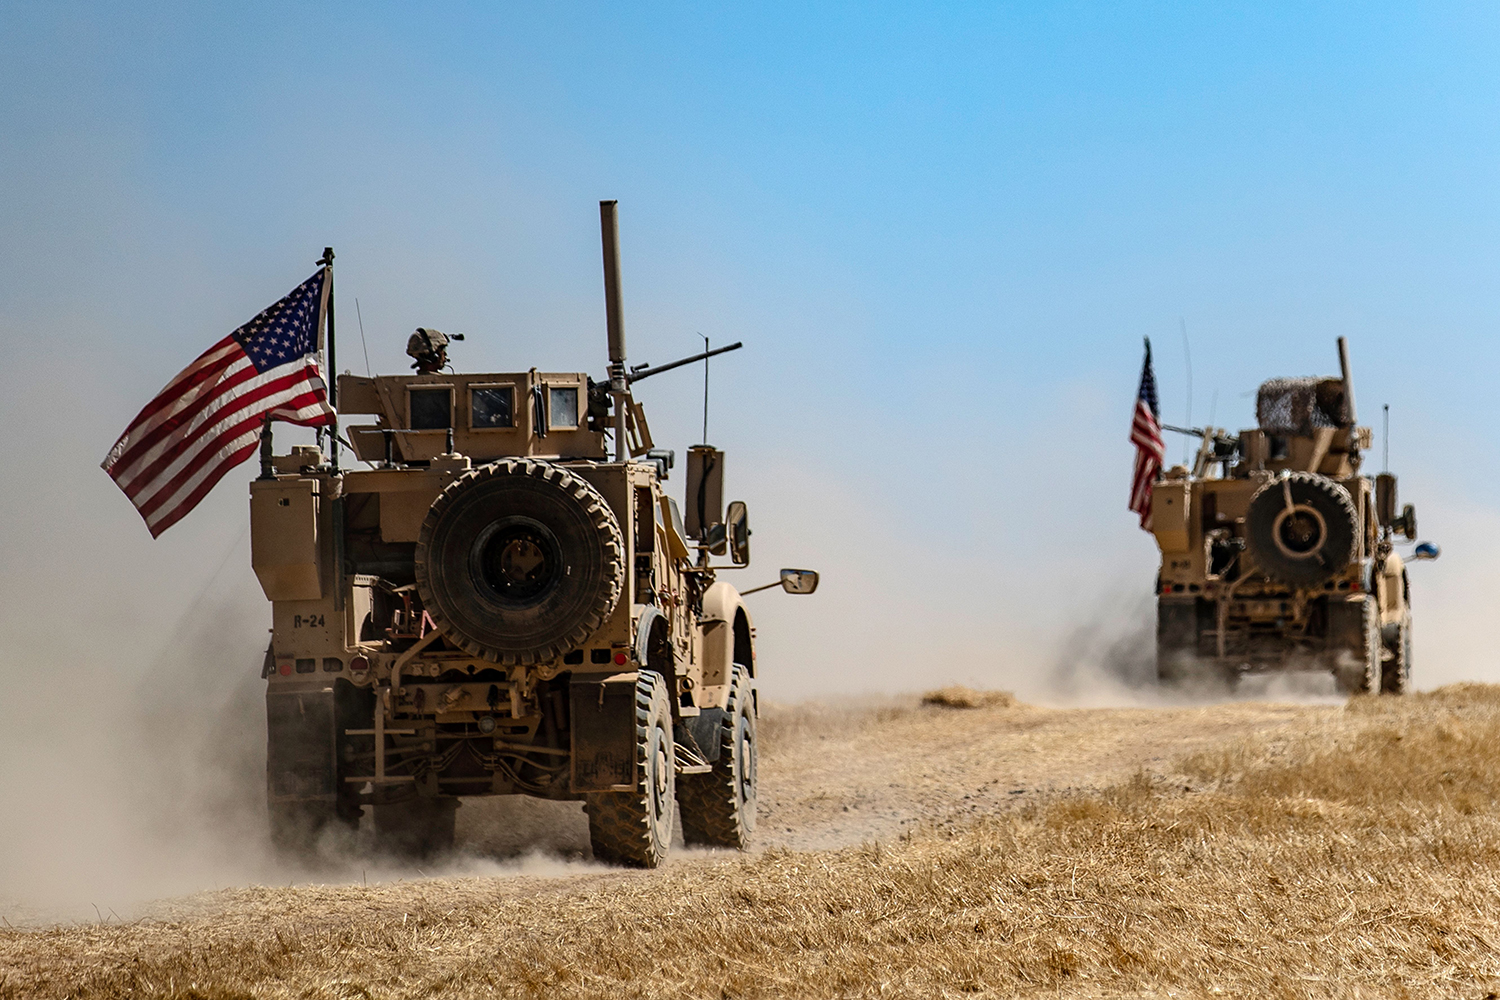 A U.S. military convoy takes part in joint patrol with Turkish troops in the Syrian village of al-Hashisha on the outskirts of Tal Abyad town along the border with Turkish troops, on Sept. 8, 2019. (Delil Souleiman/AFP via Getty Images)